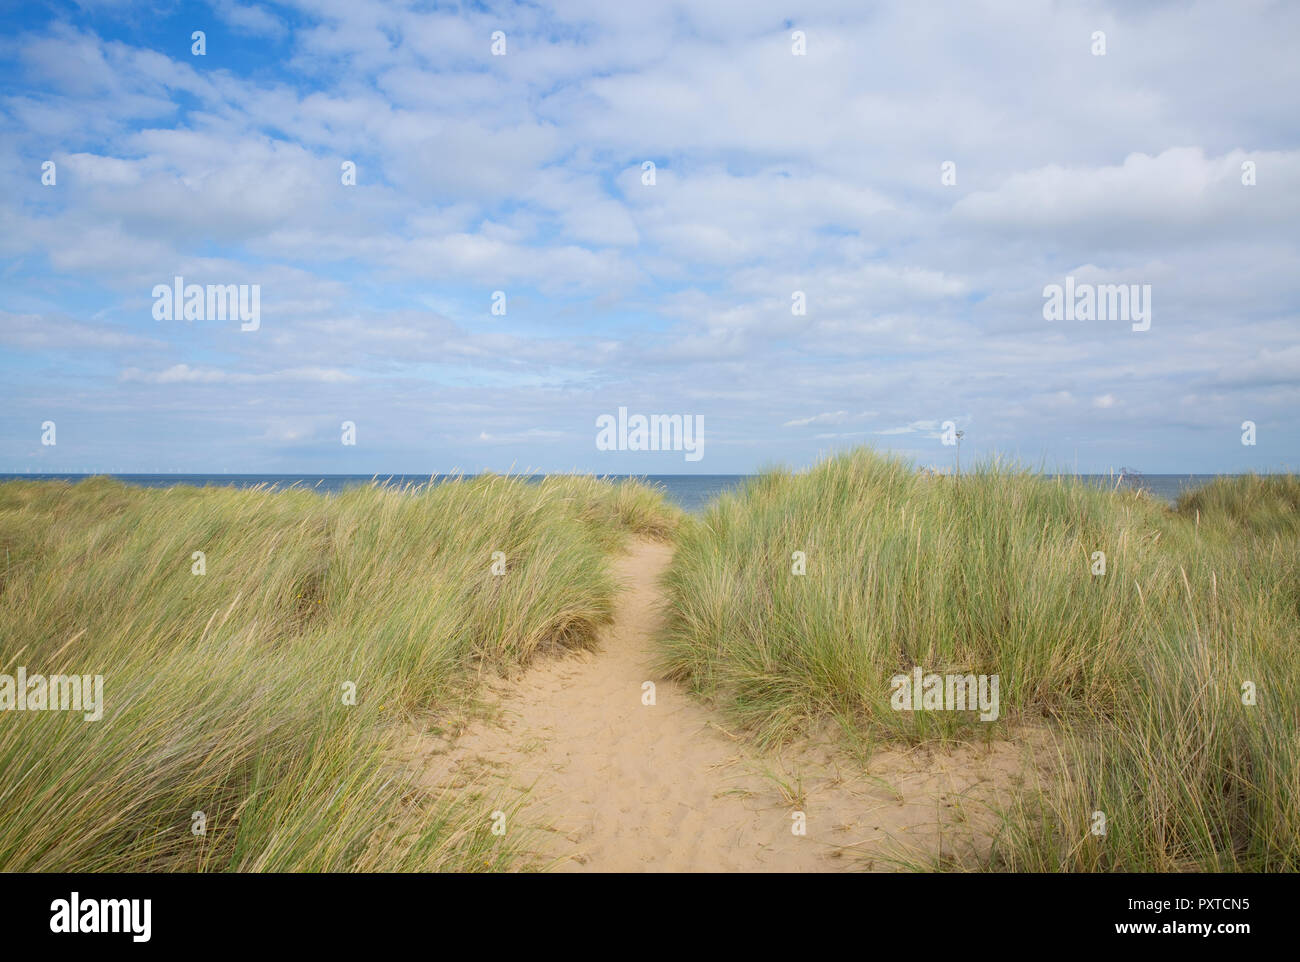 Walking in the sand dunes at Thornham, Norfolk, England - Stock Image